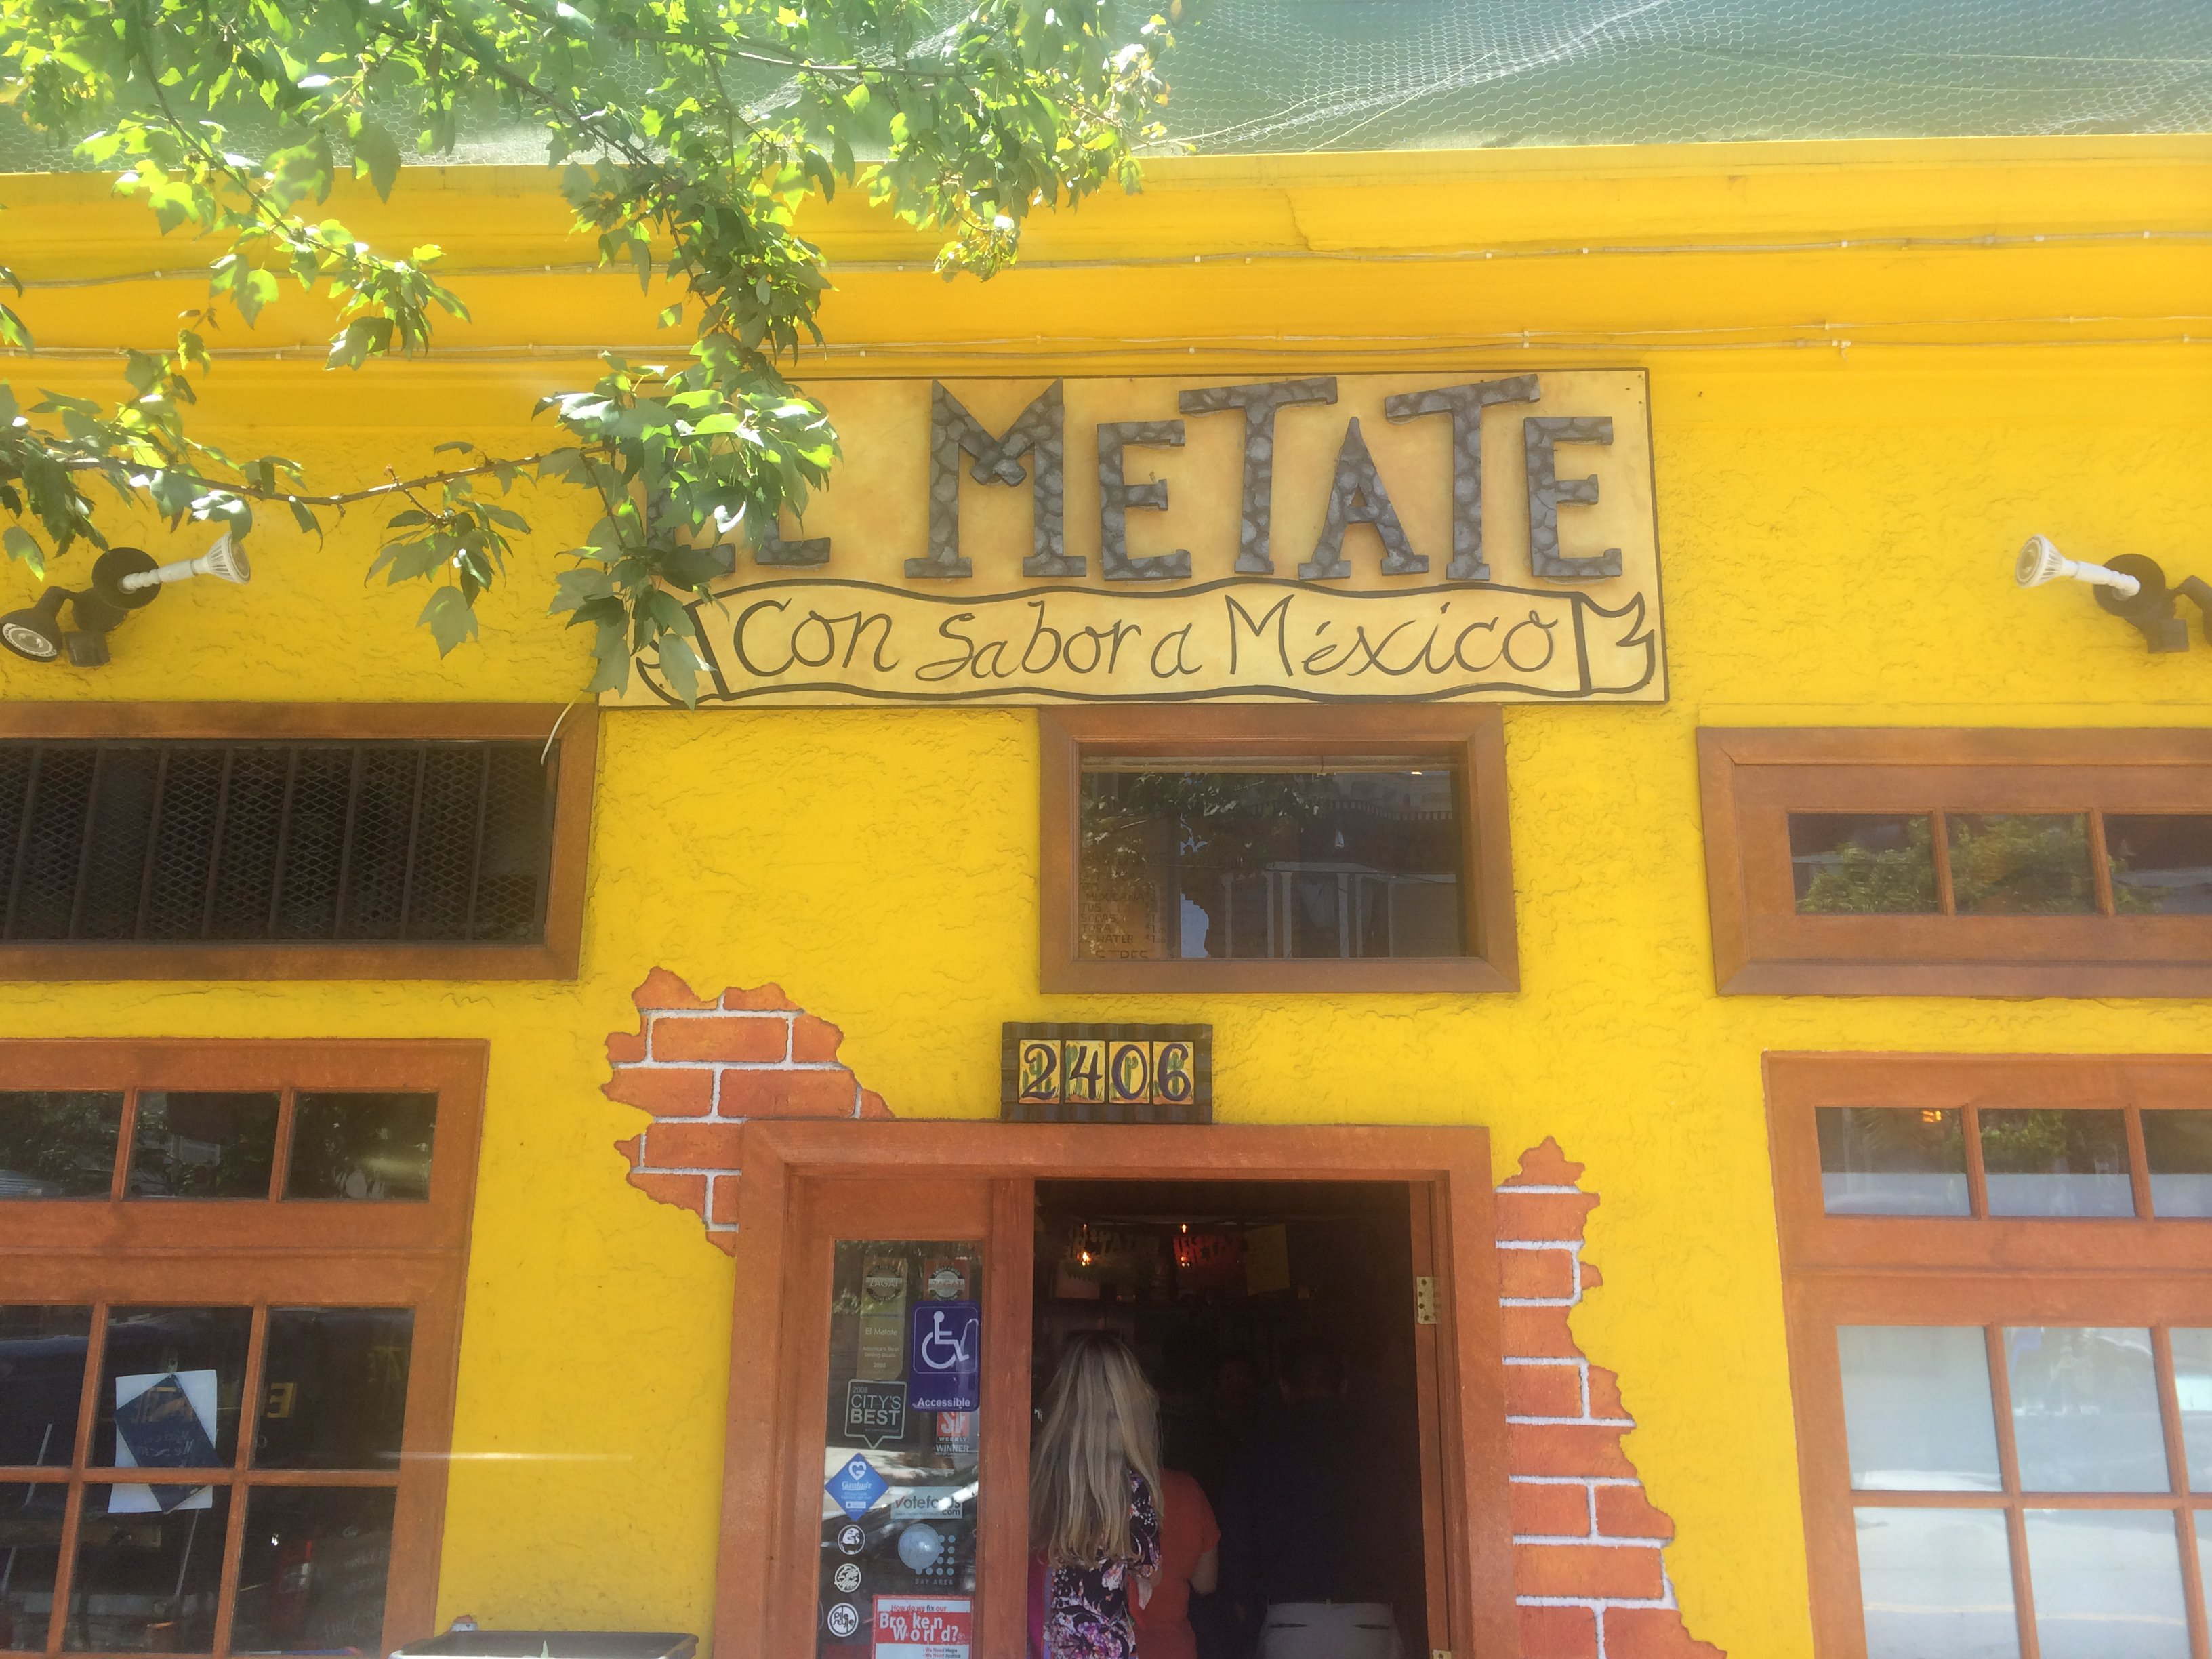 entrance to El Metate restaurant in Mission District